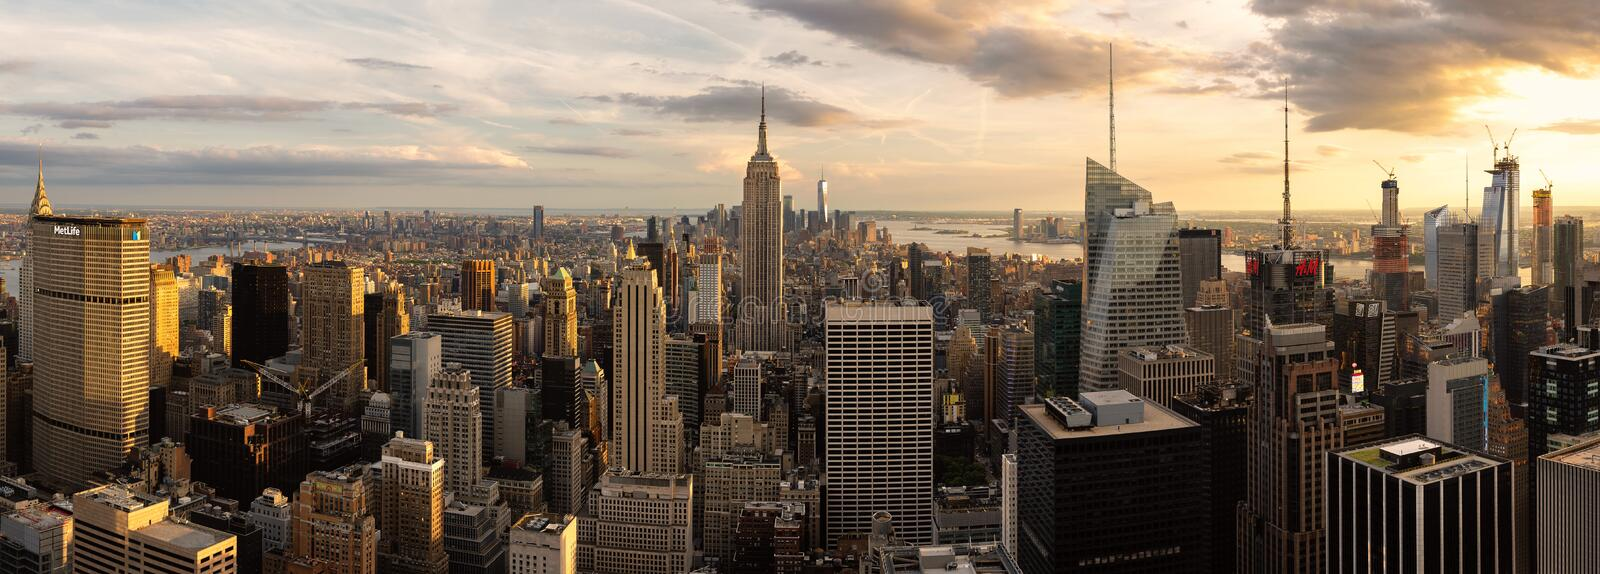 Panorama of Empire State Building and New York City Skyline stock photo